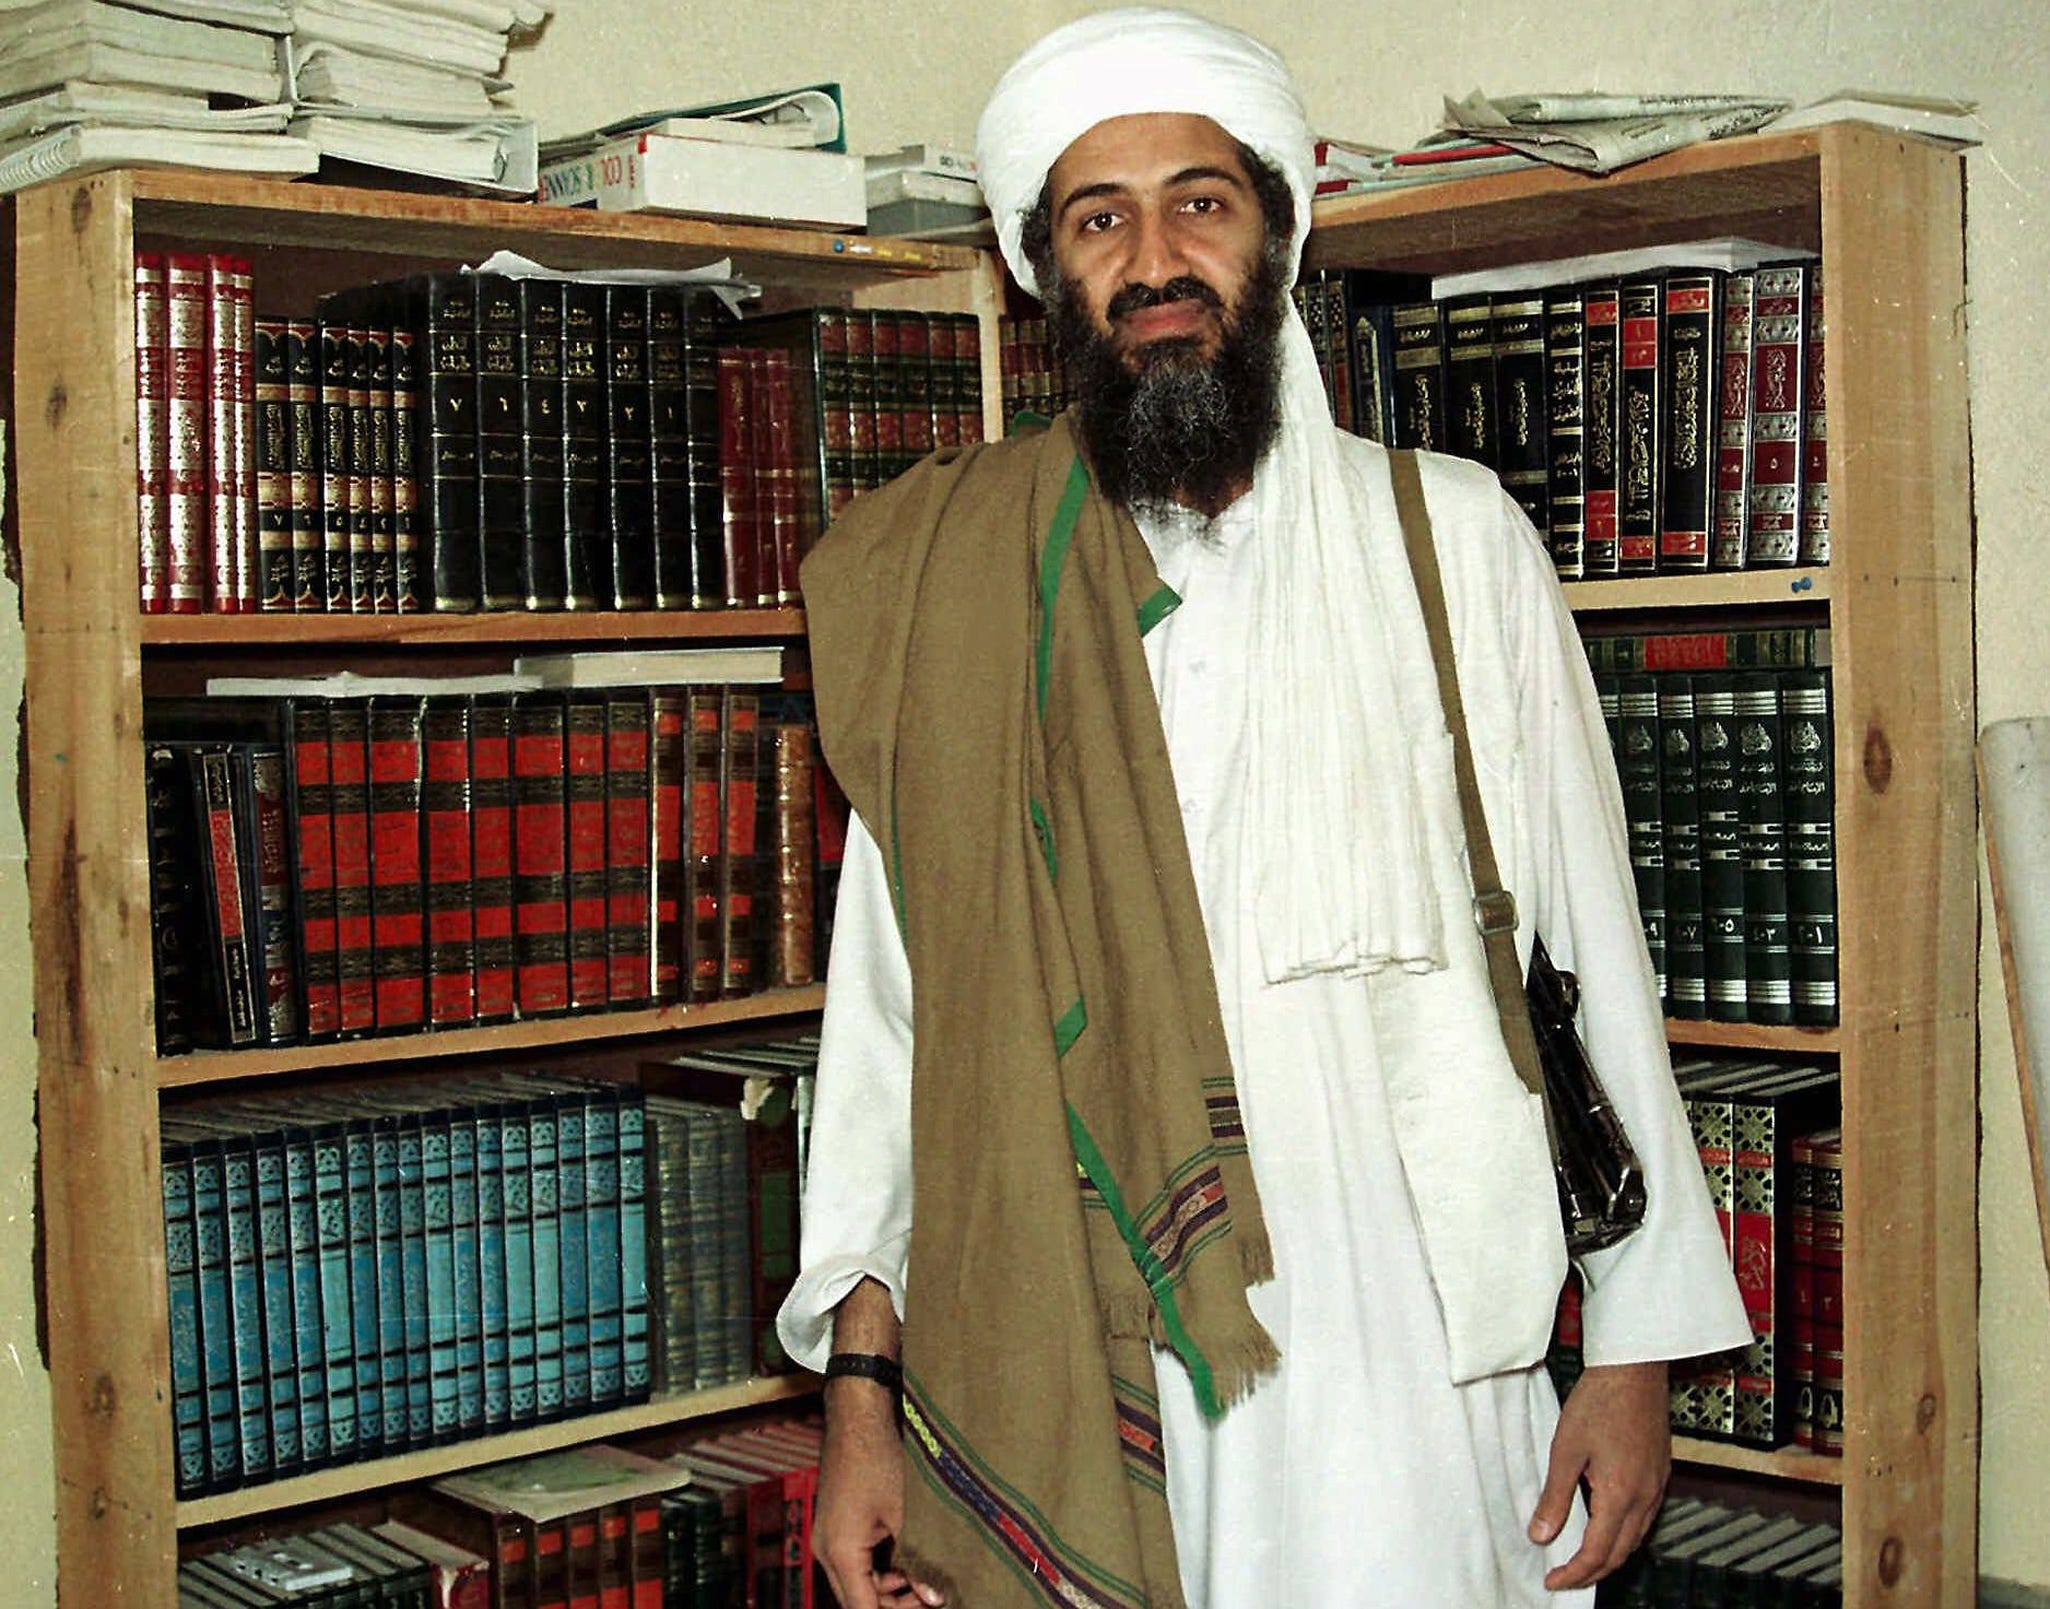 Osama bin Laden poses for a photograph on March 31, 1998, in Afghanistan.